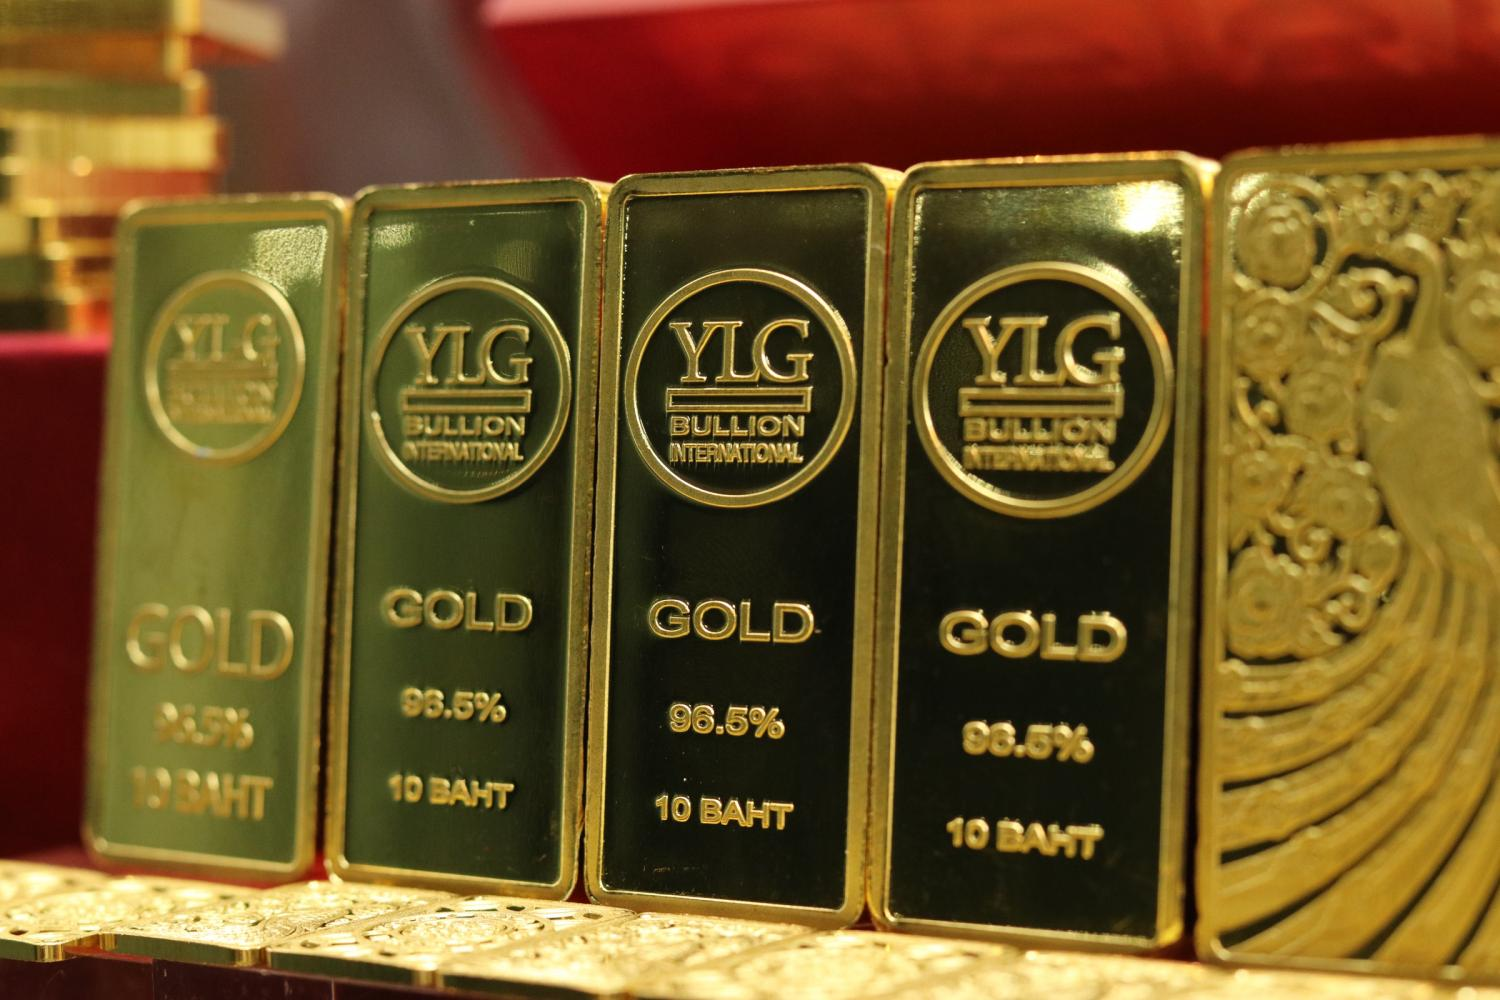 YLG gold bars on display. The local gold price has risen by 1,500 baht or about 4% in the past three weeks.